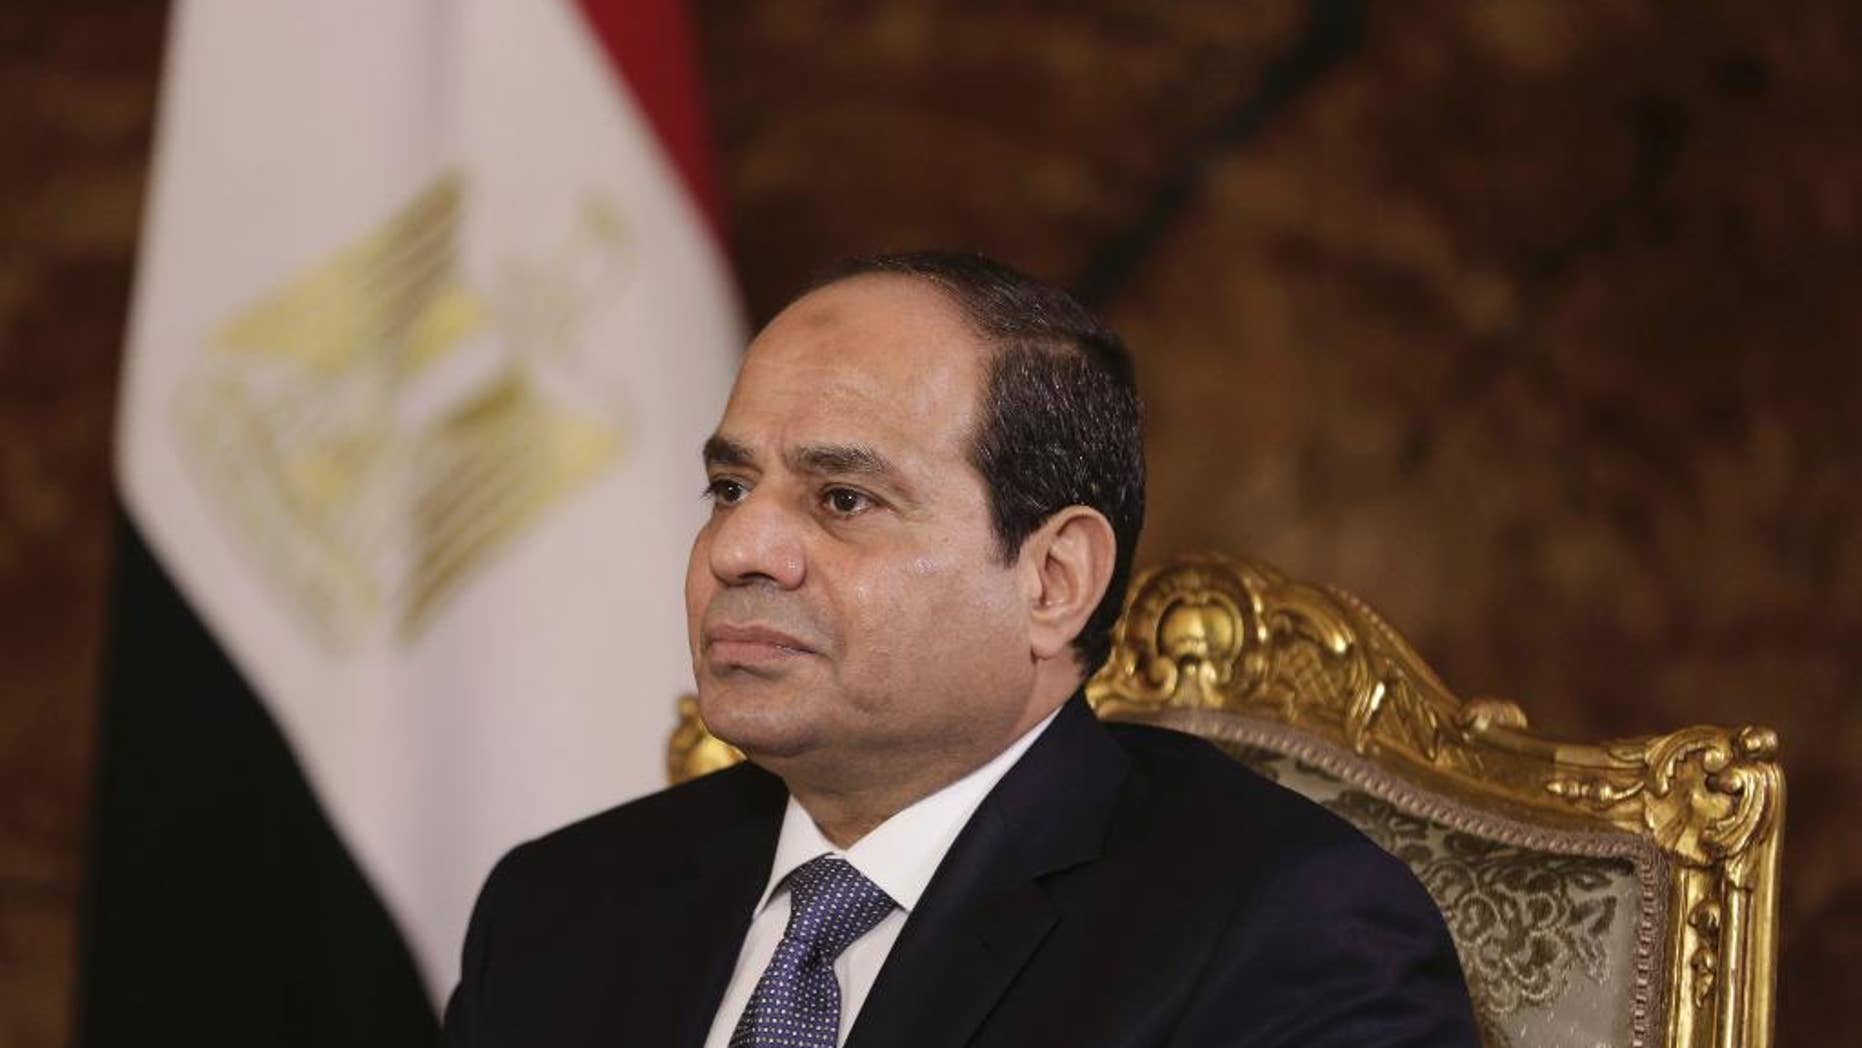 FILE - In this Sept. 20, 2014 file photo, Egyptian President Abdel-Fattah el-Sissi listens during an interview with The Associated Press at the presidential palace in Cairo. Egypt's President Abdel-Fattah el-Sissi is praising U.S. President-elect Donald J. Trump saying Trump's words as a presidential candidate will be different from his actions as a president. (AP Photo/Maya Alleruzzo, File)